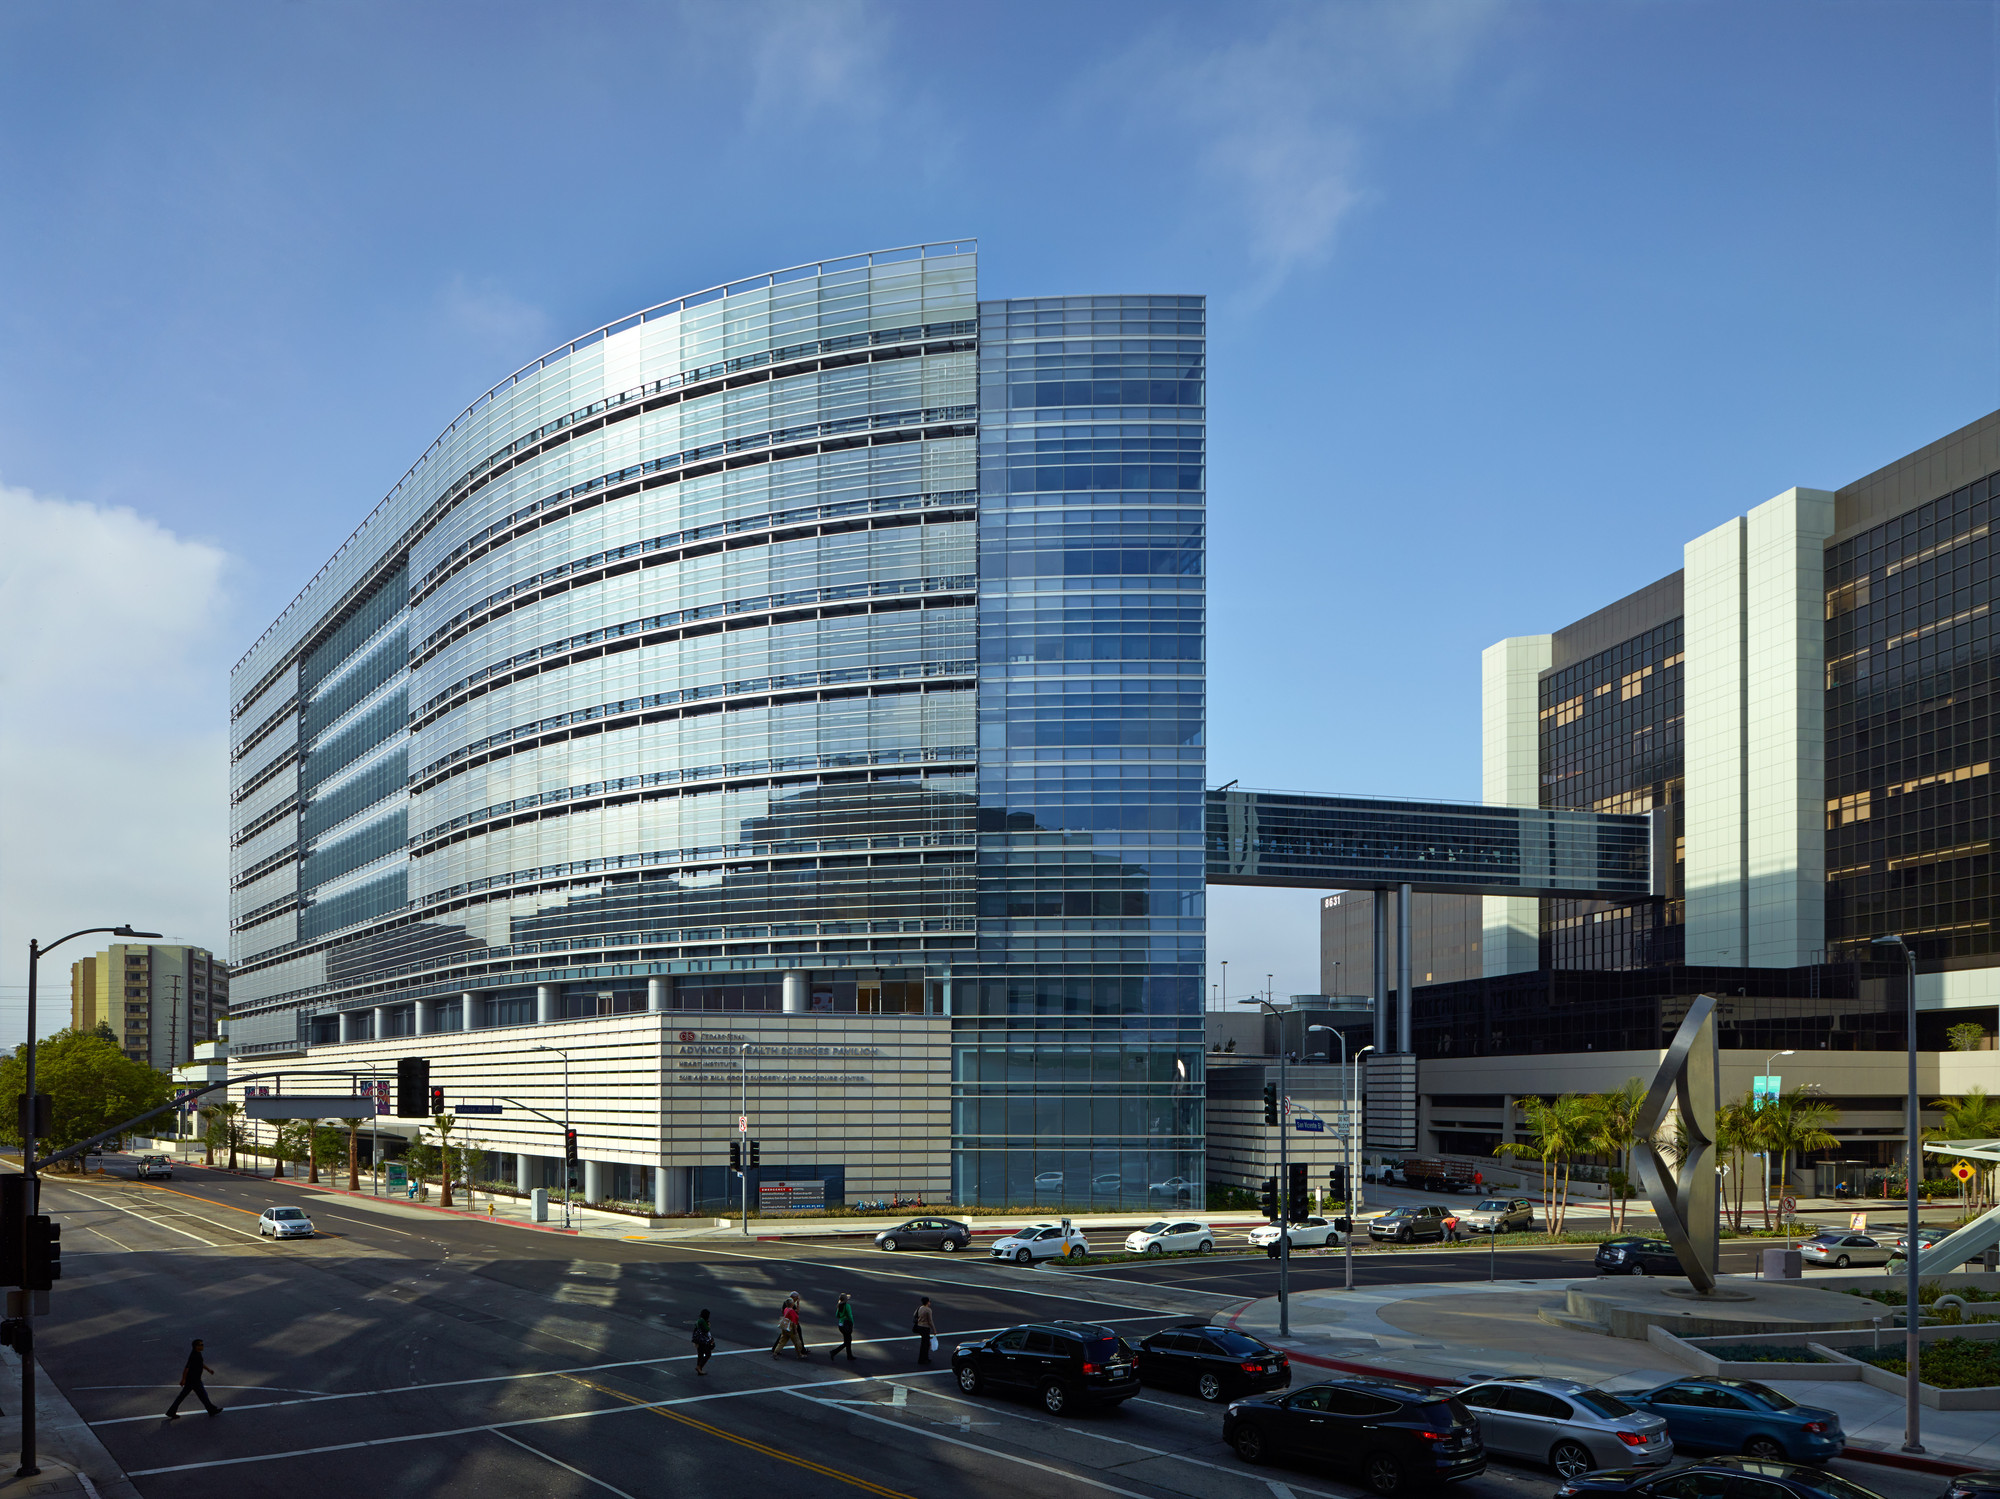 2014 Los Angeles Architectural Awards Announced | ArchDaily